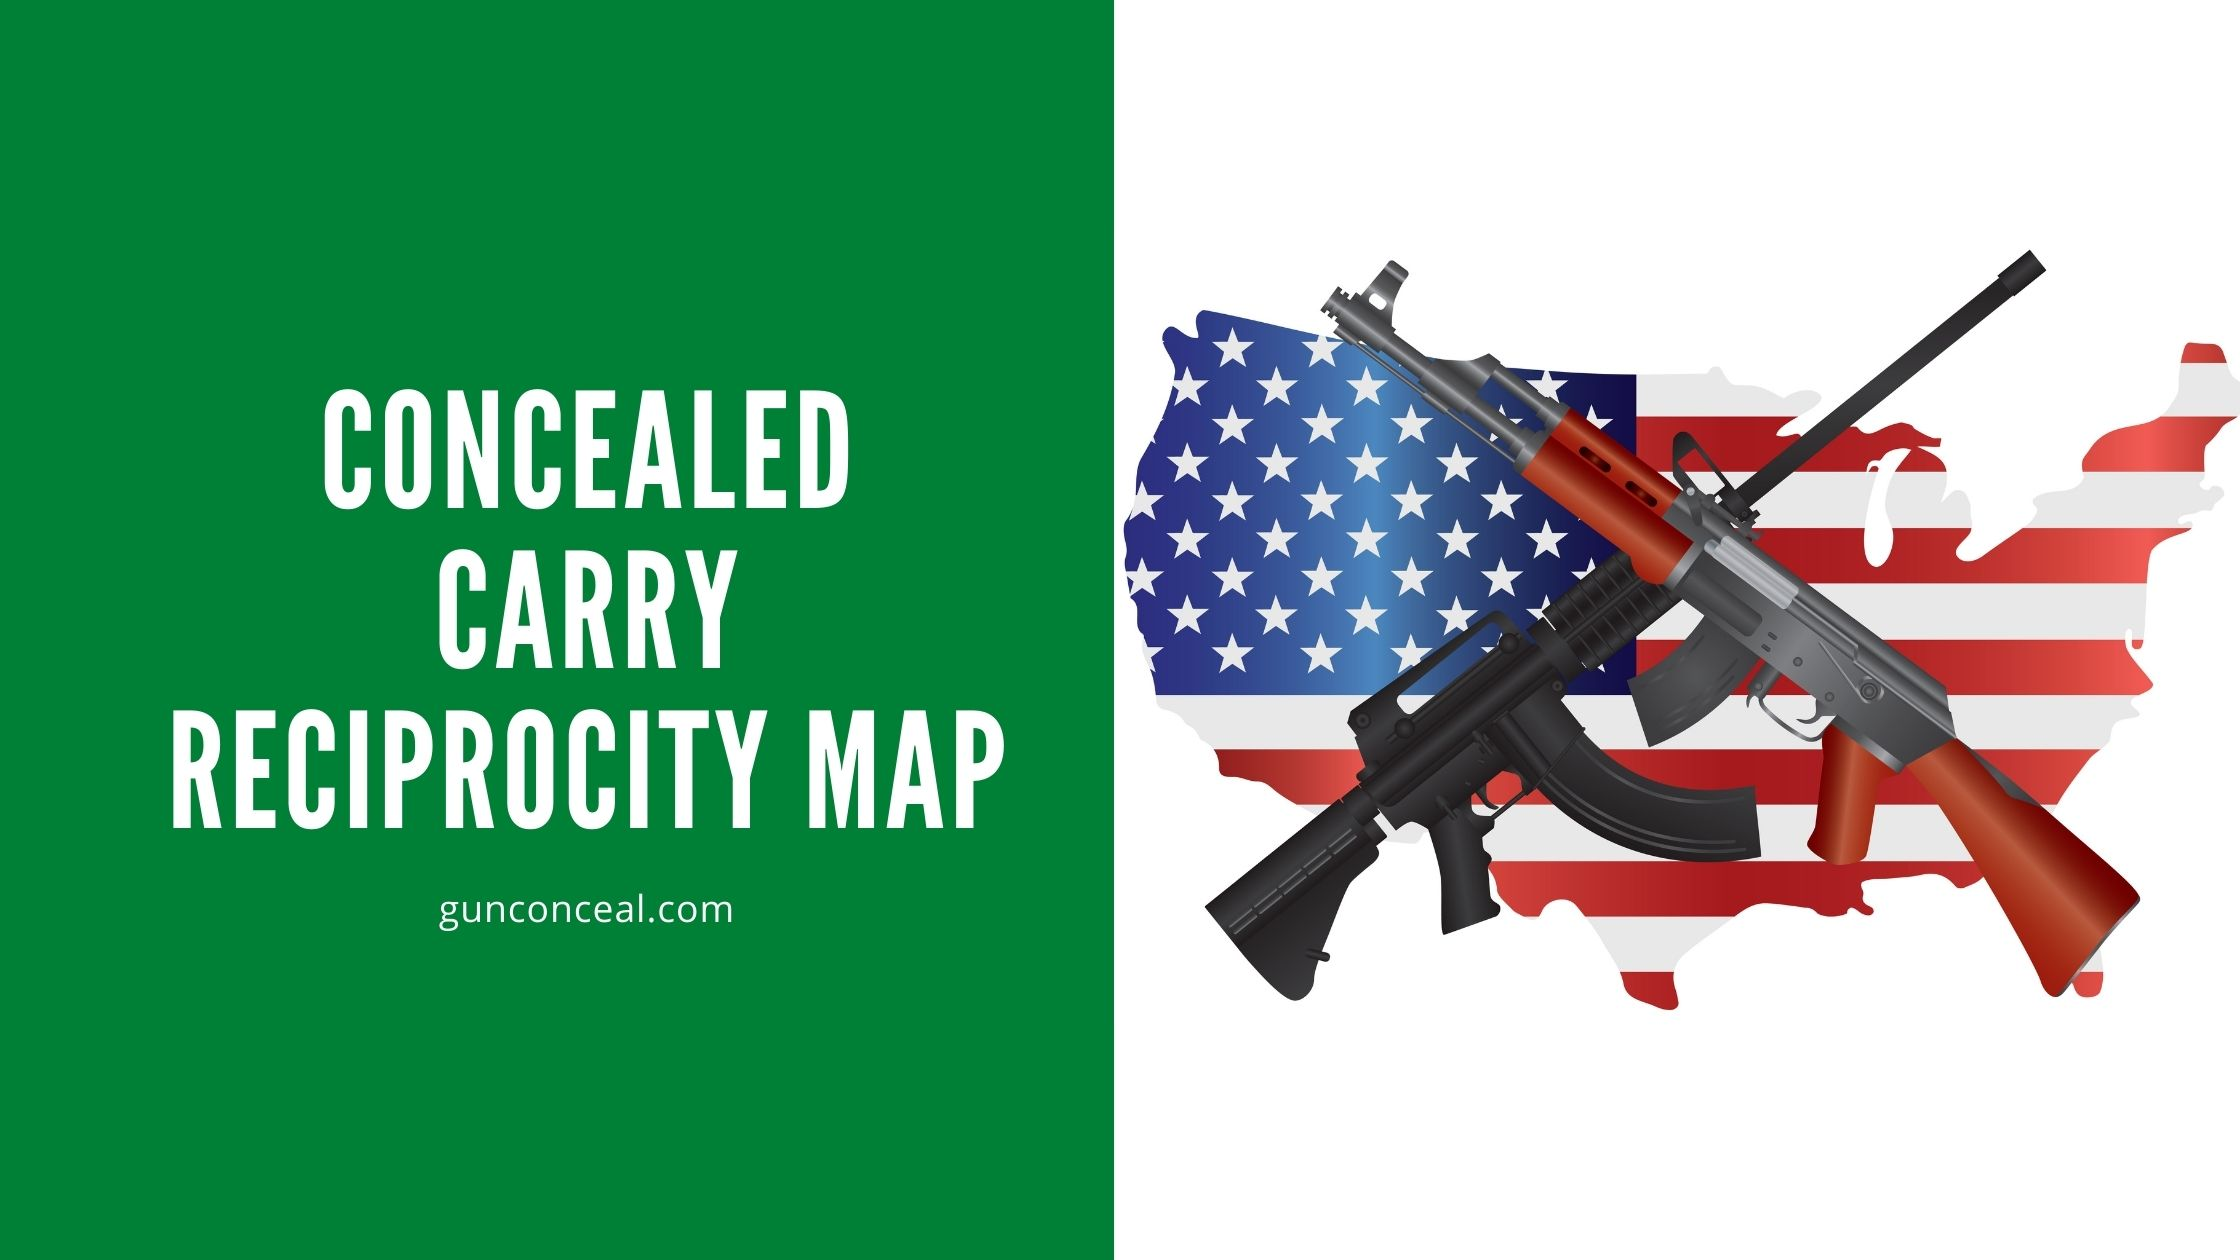 Concealed Carry Reciprocity Map